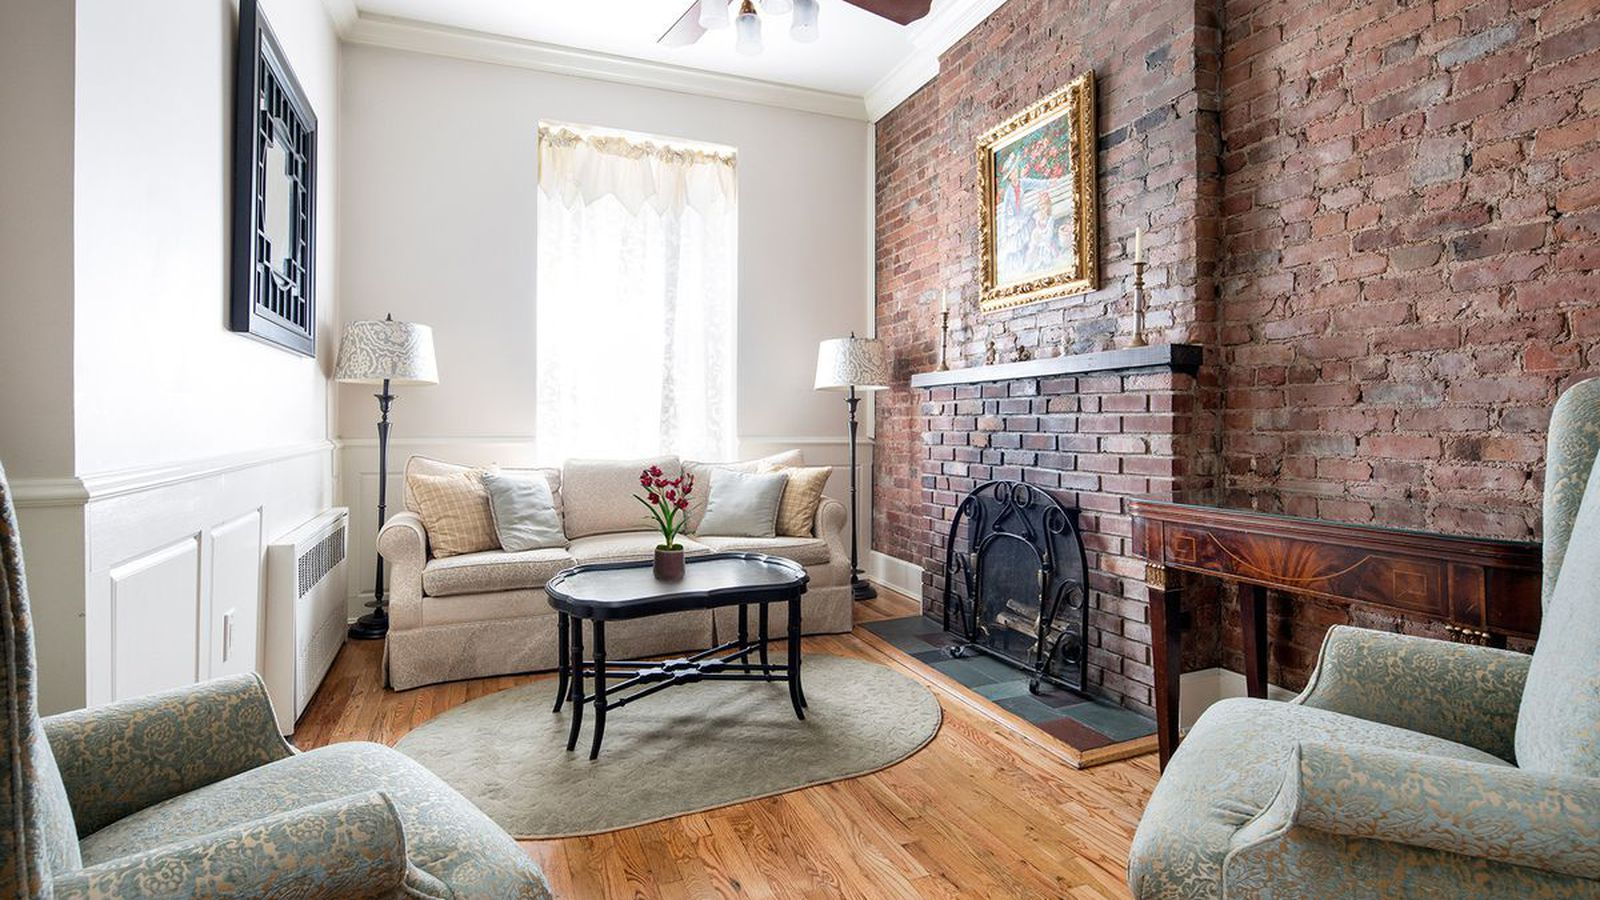 Big reveal 879k for a petite west village one bedroom for West village apartment for sale